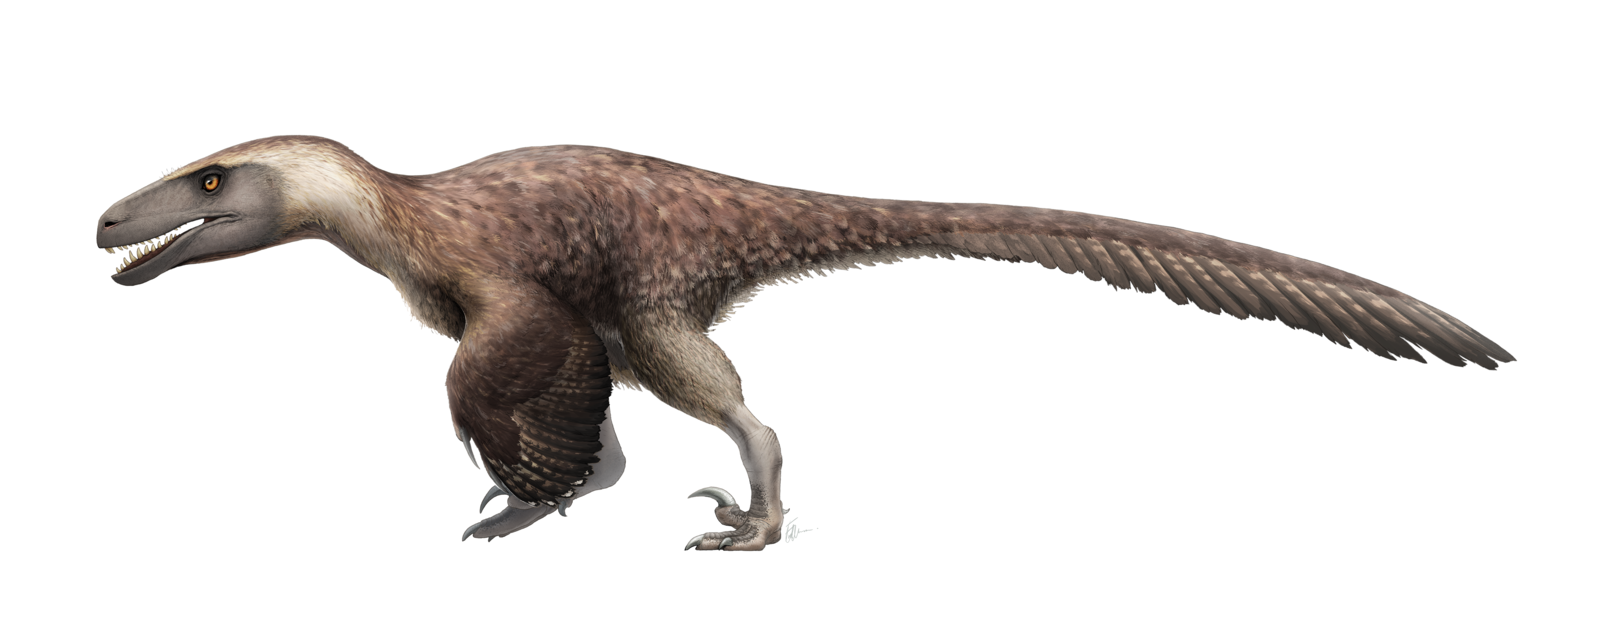 Discovered1993 Main Classificationdromaeosaur Size20ft6m Long Dietsmallmedium Sized Dinosaurs Locationunited States Timeearly Cretaceous 125 Mya Steam Community Steam Community Guide The Real Animals Of Ark